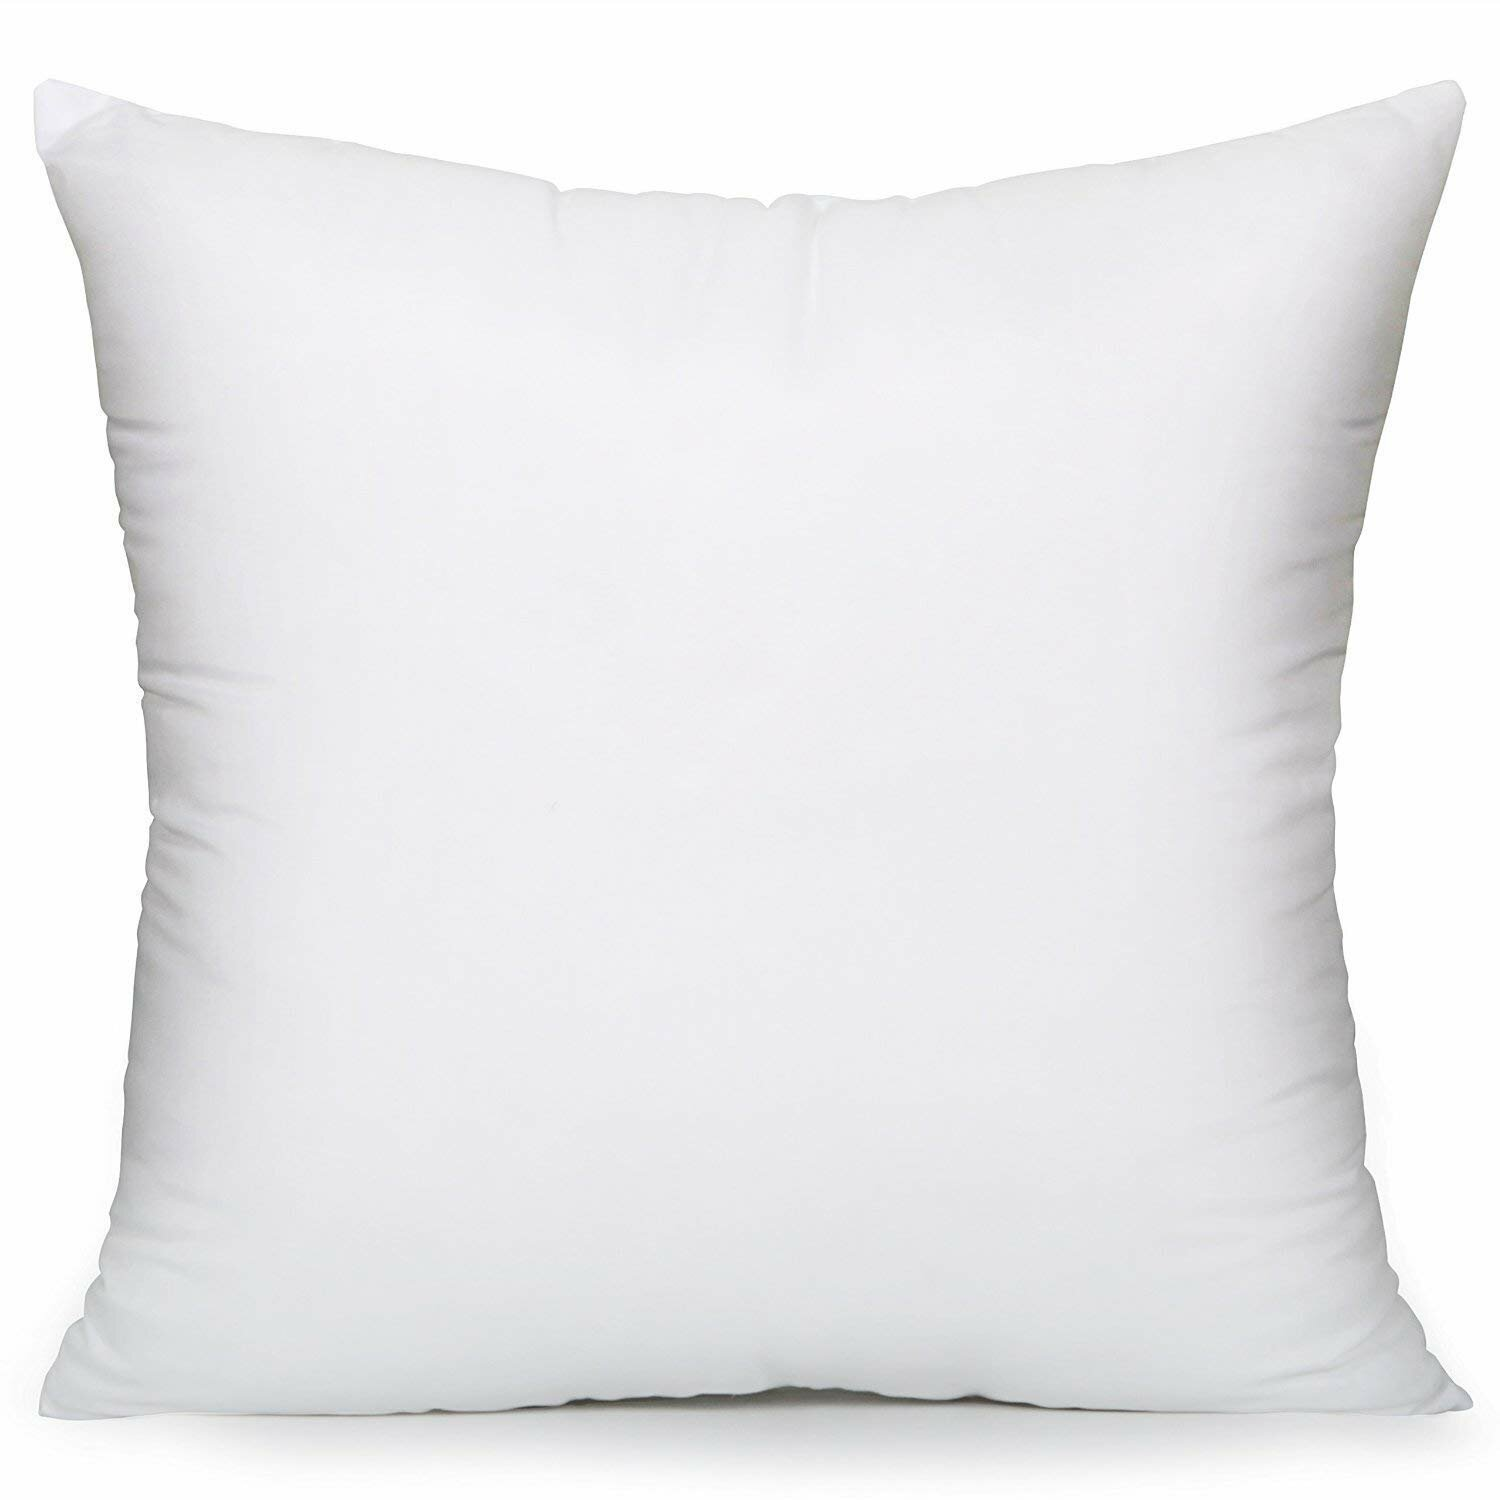 White Throw Pillows Free Shipping Over 35 Wayfair